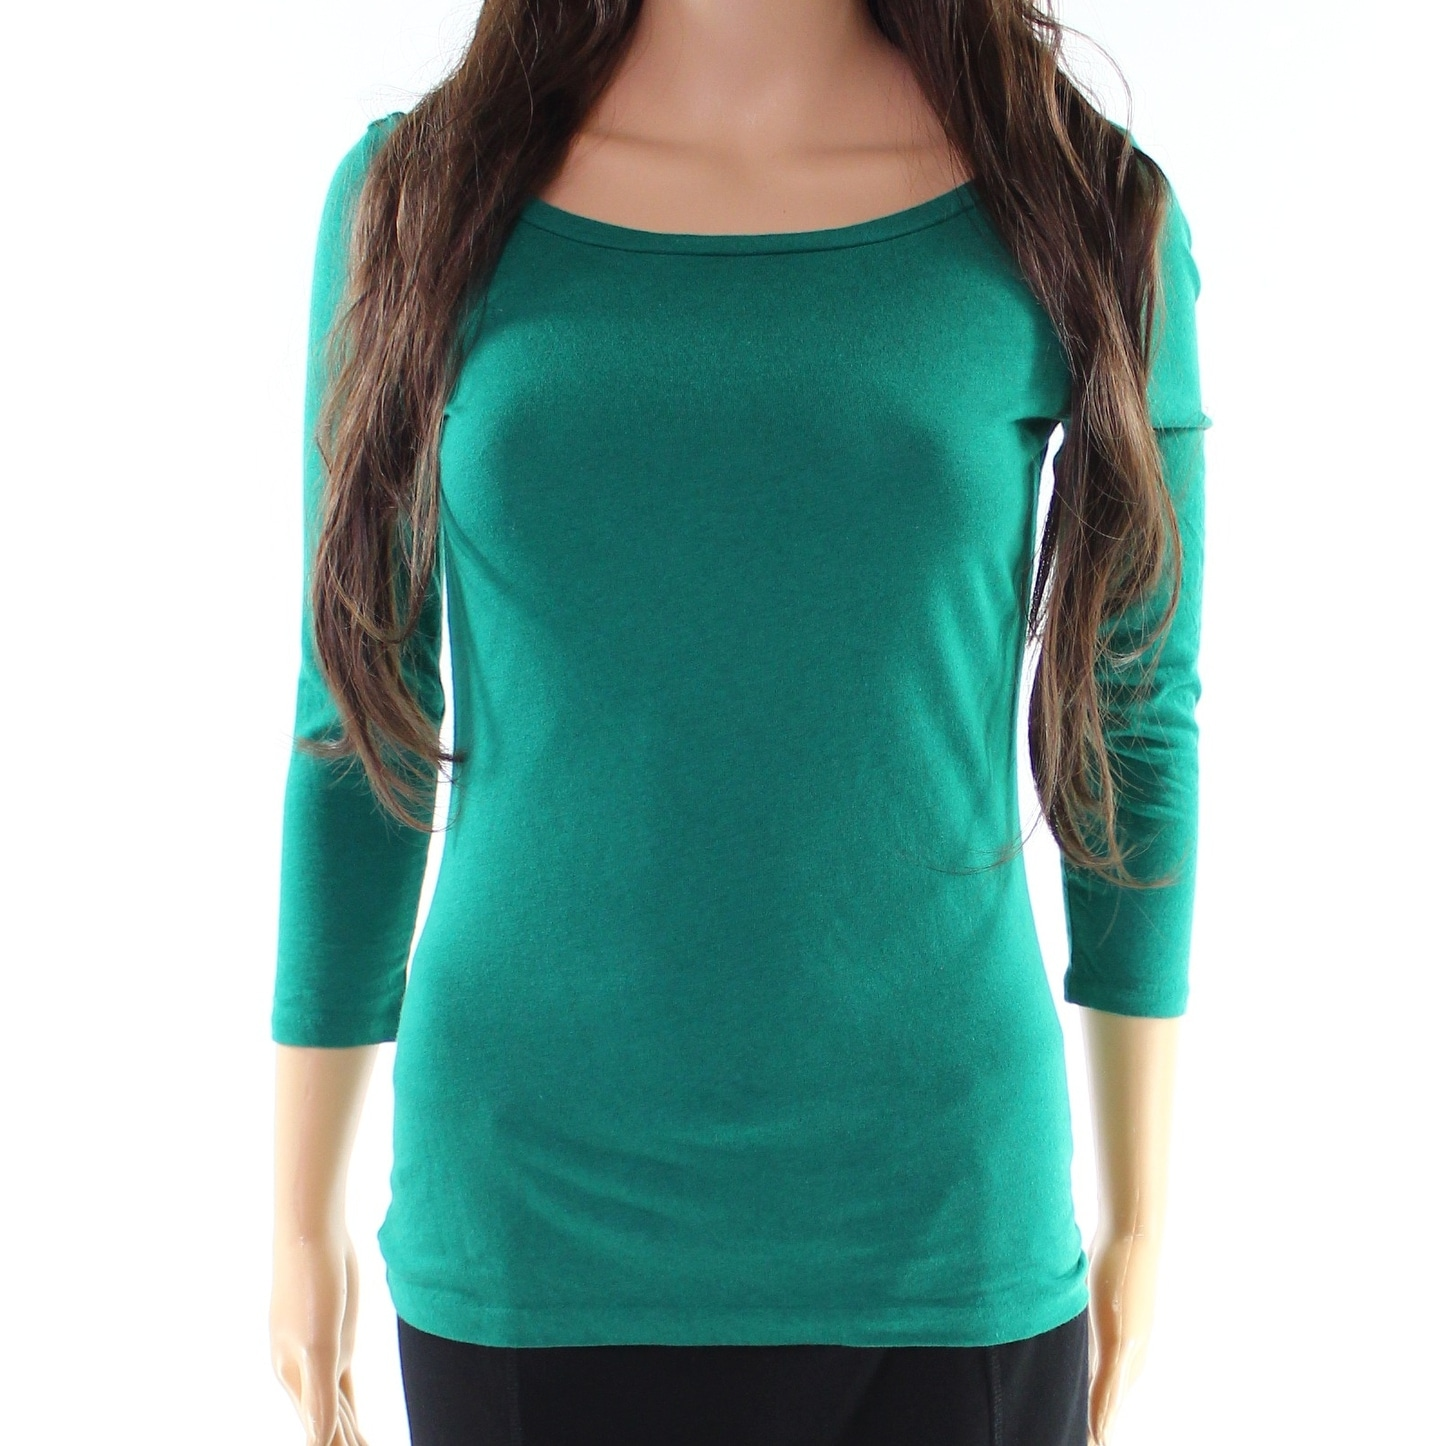 4ebf4d3d2 Size XXS Green Tops | Find Great Women's Clothing Deals Shopping at  Overstock